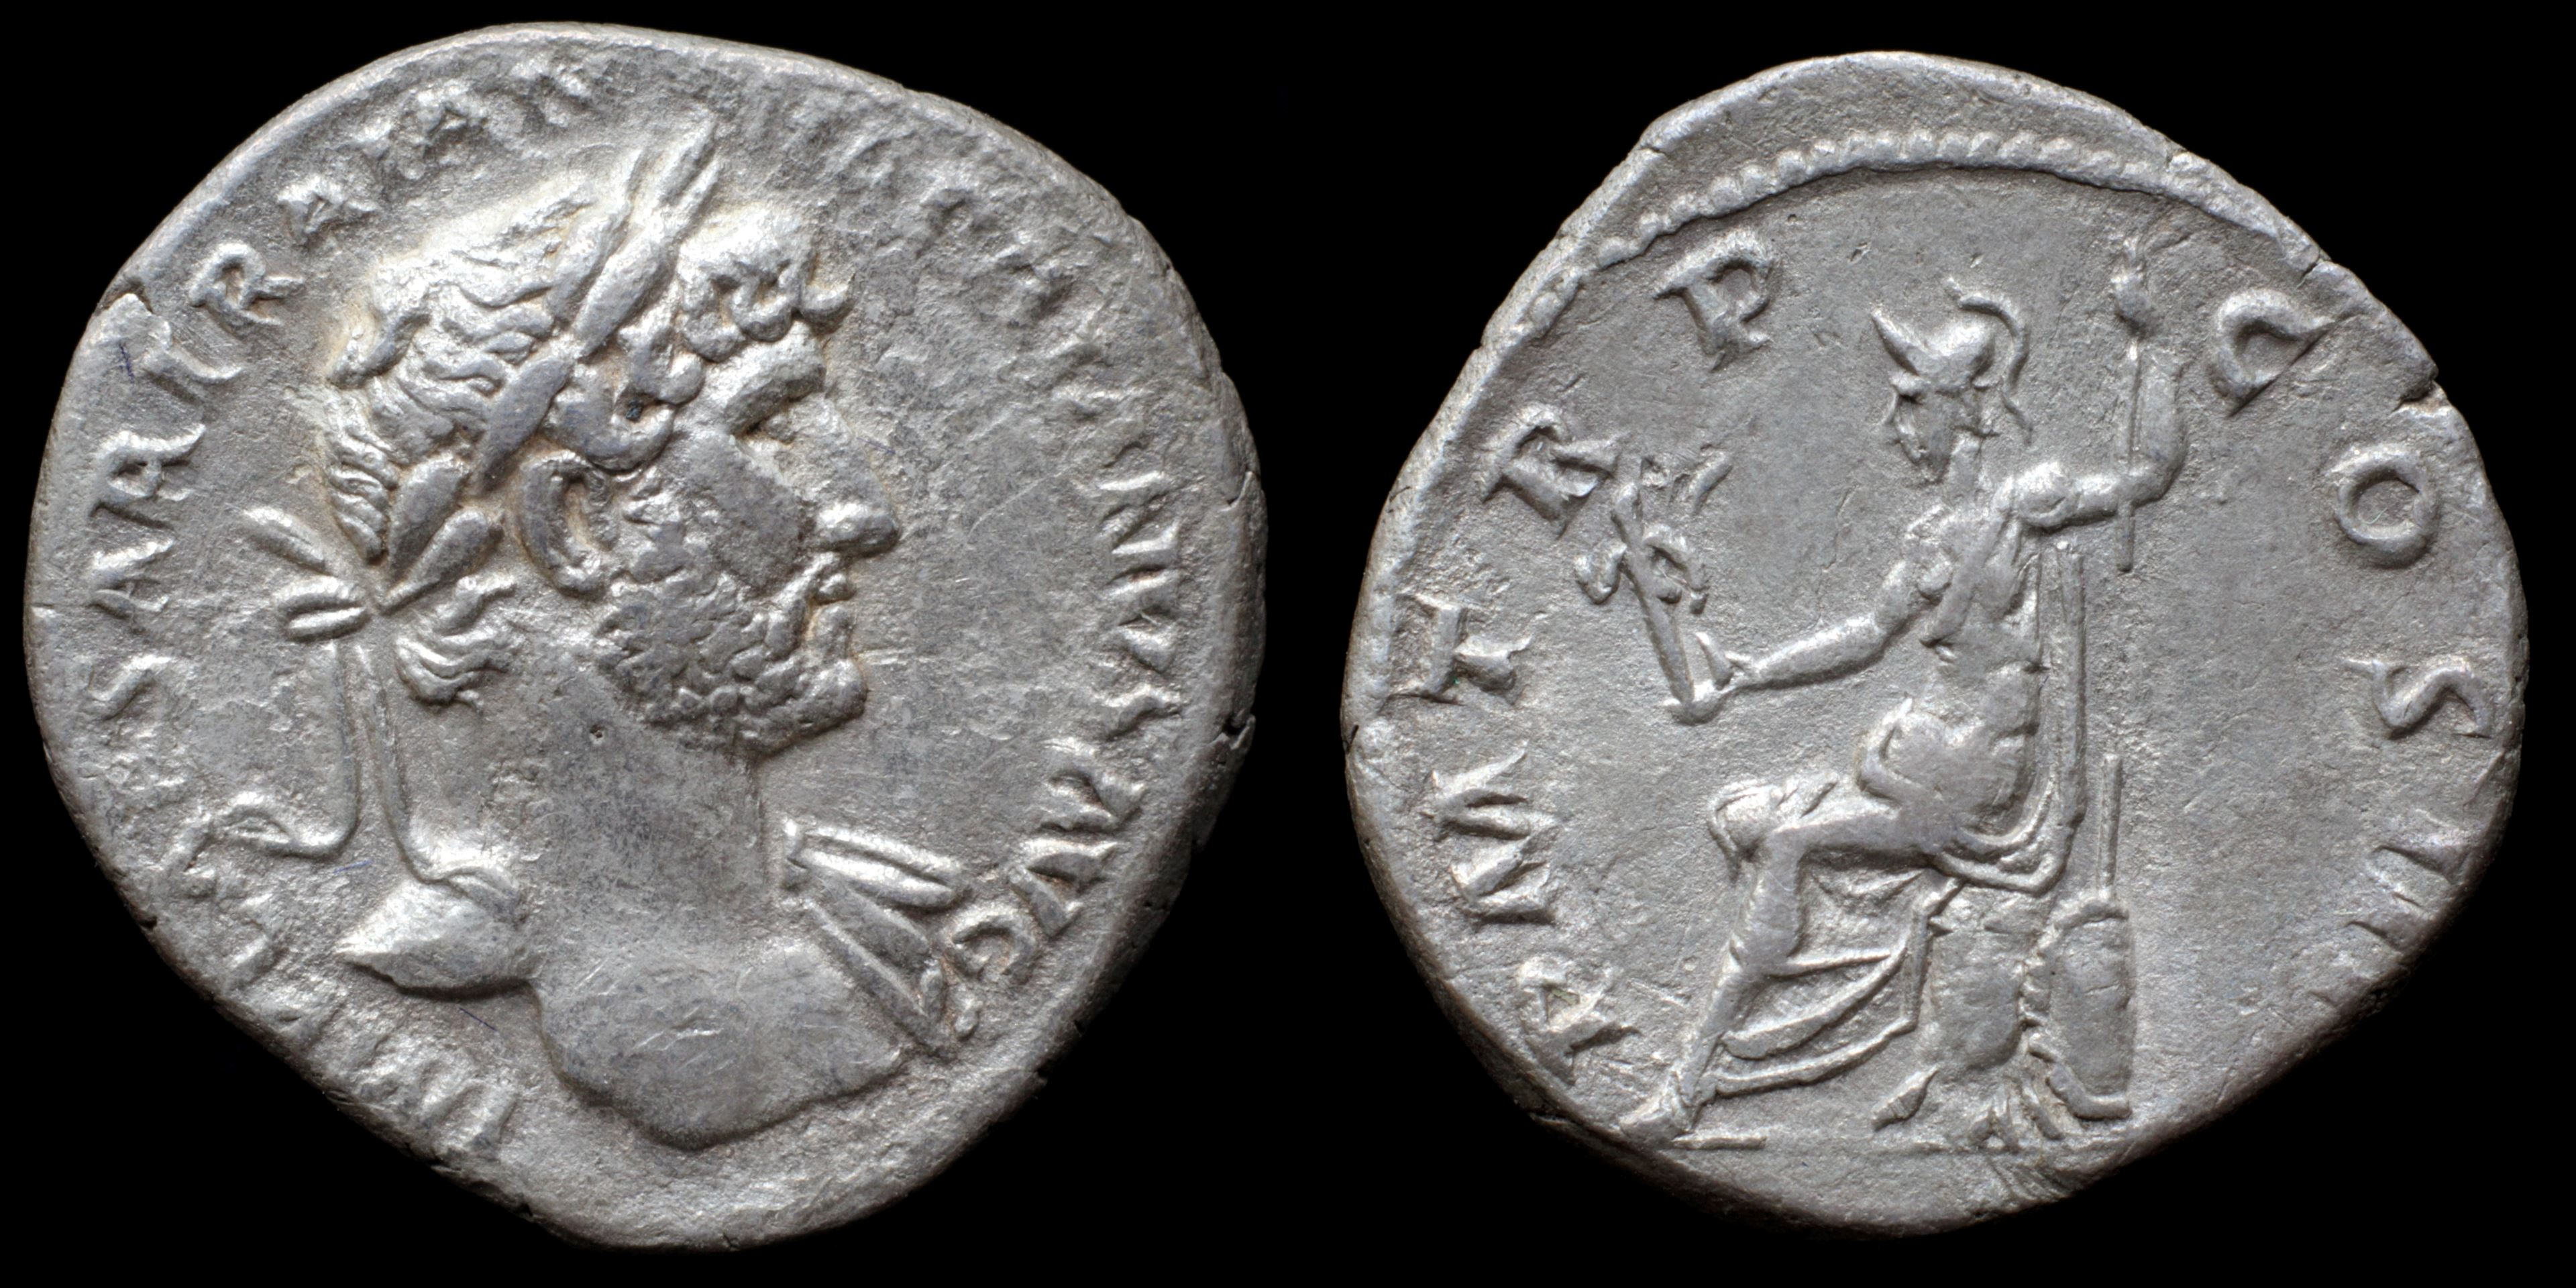 /Files/Images/Coinsite/CoinDB/403_Hadrian_Roma.JPG